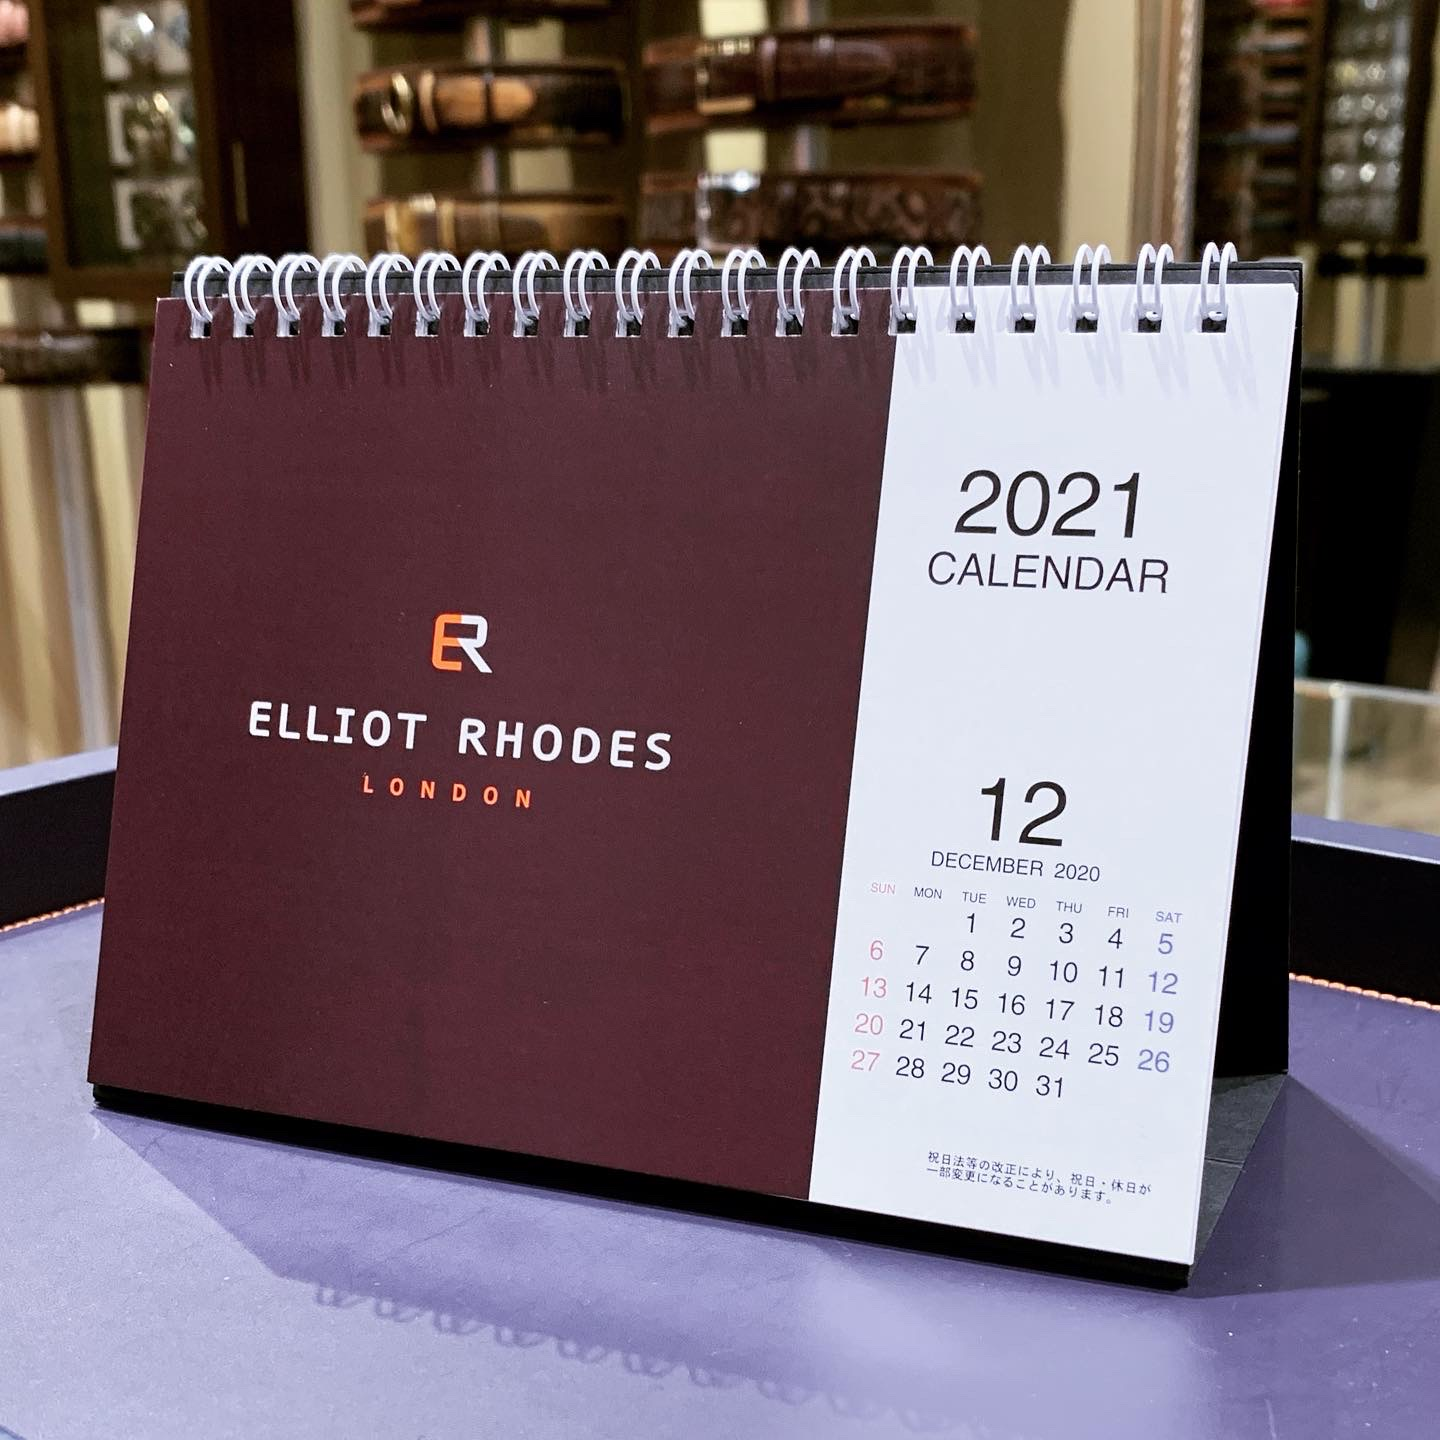 ELLIOT RHODES LONDON CALENDER 2021